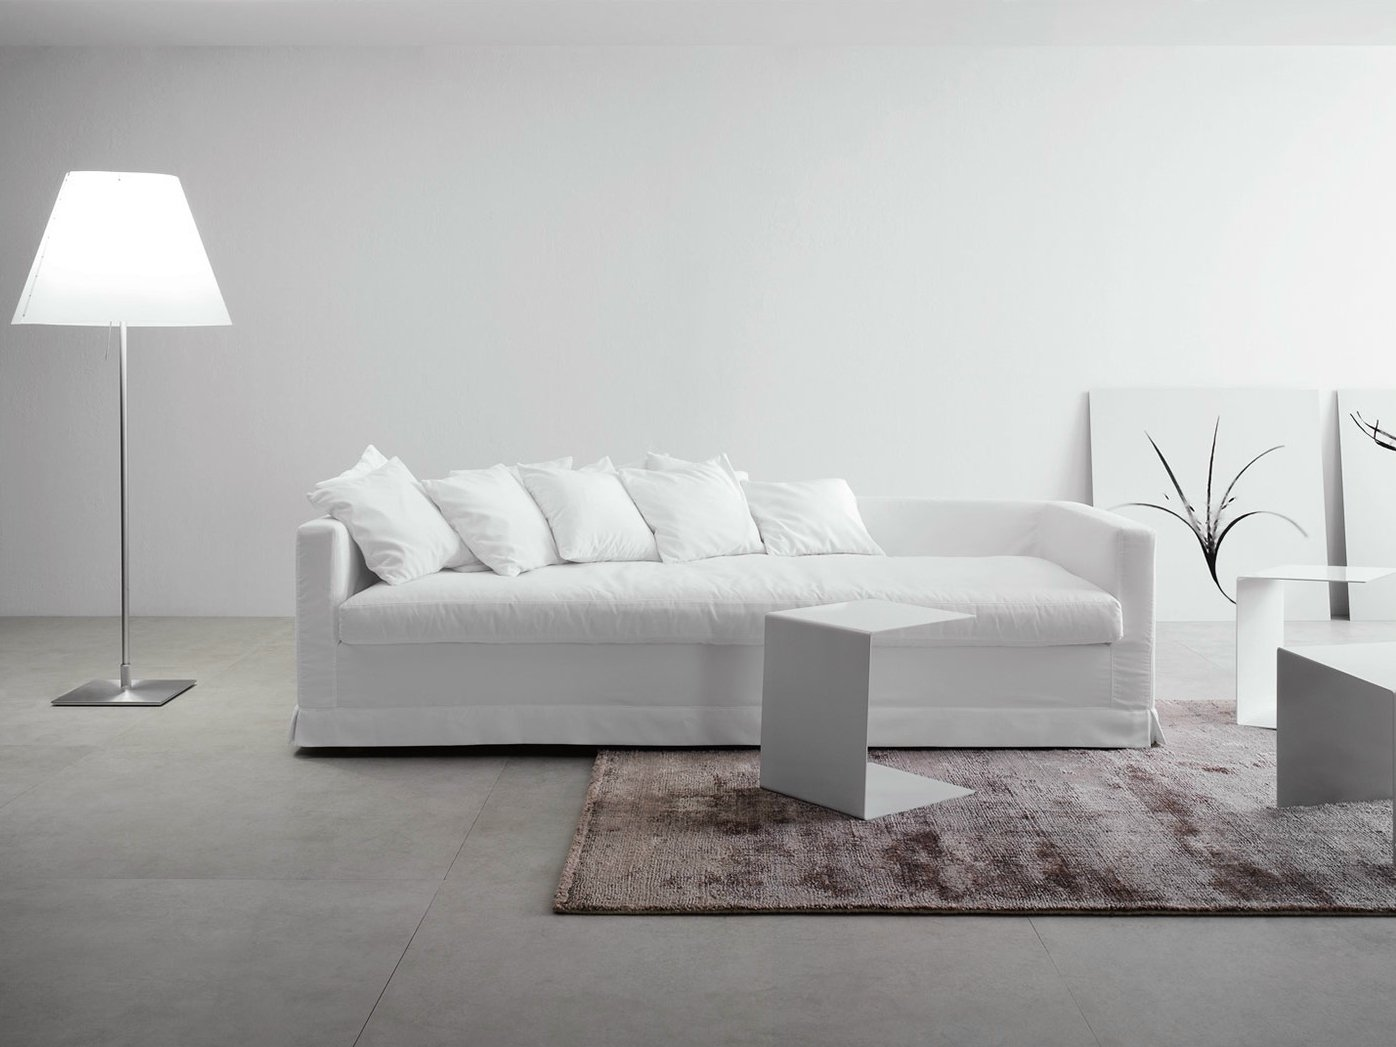 Otto Sofa By Pianca Design Aldo Cibic